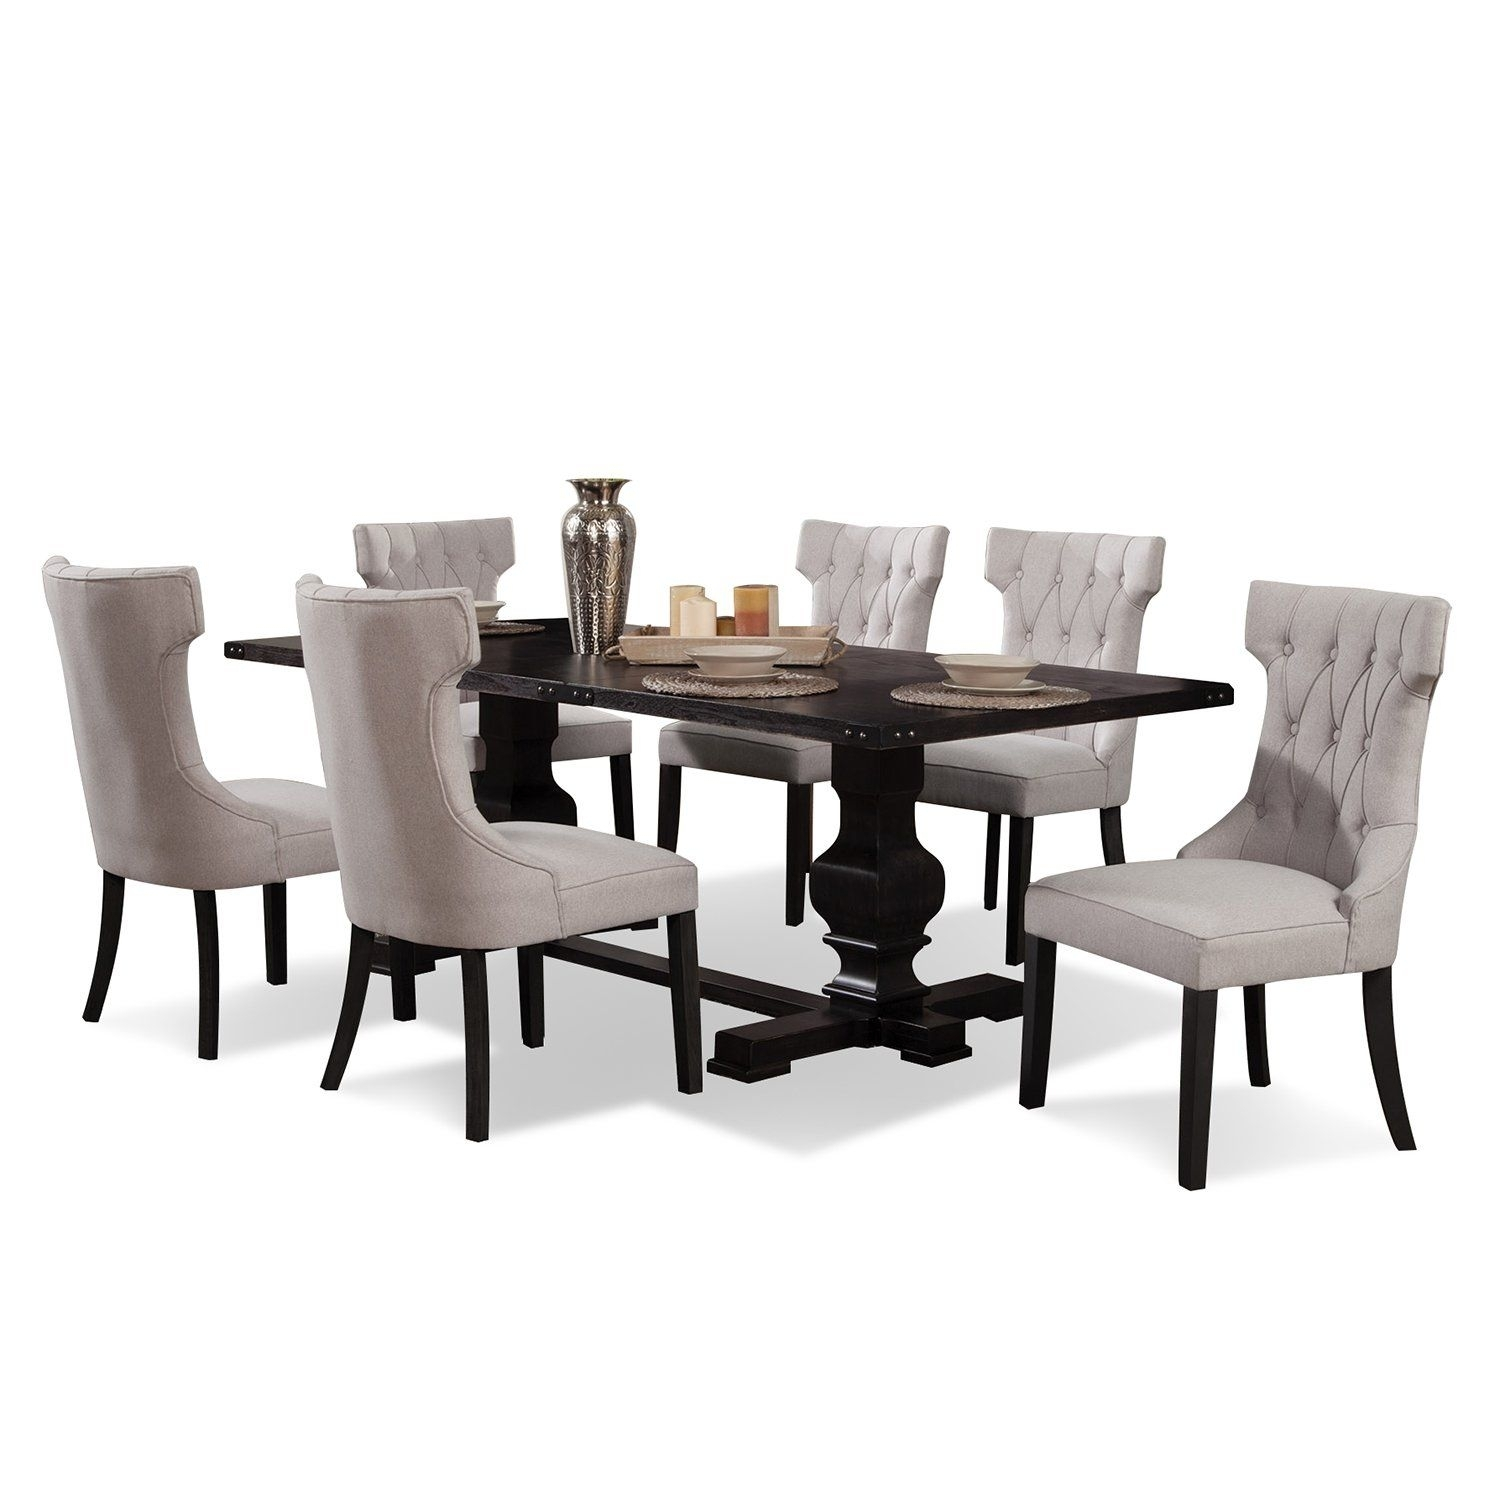 Caswell Dining Table In 2018 | Products | Pinterest | Dining, Dining Regarding Newest Walden 7 Piece Extension Dining Sets (Image 2 of 20)